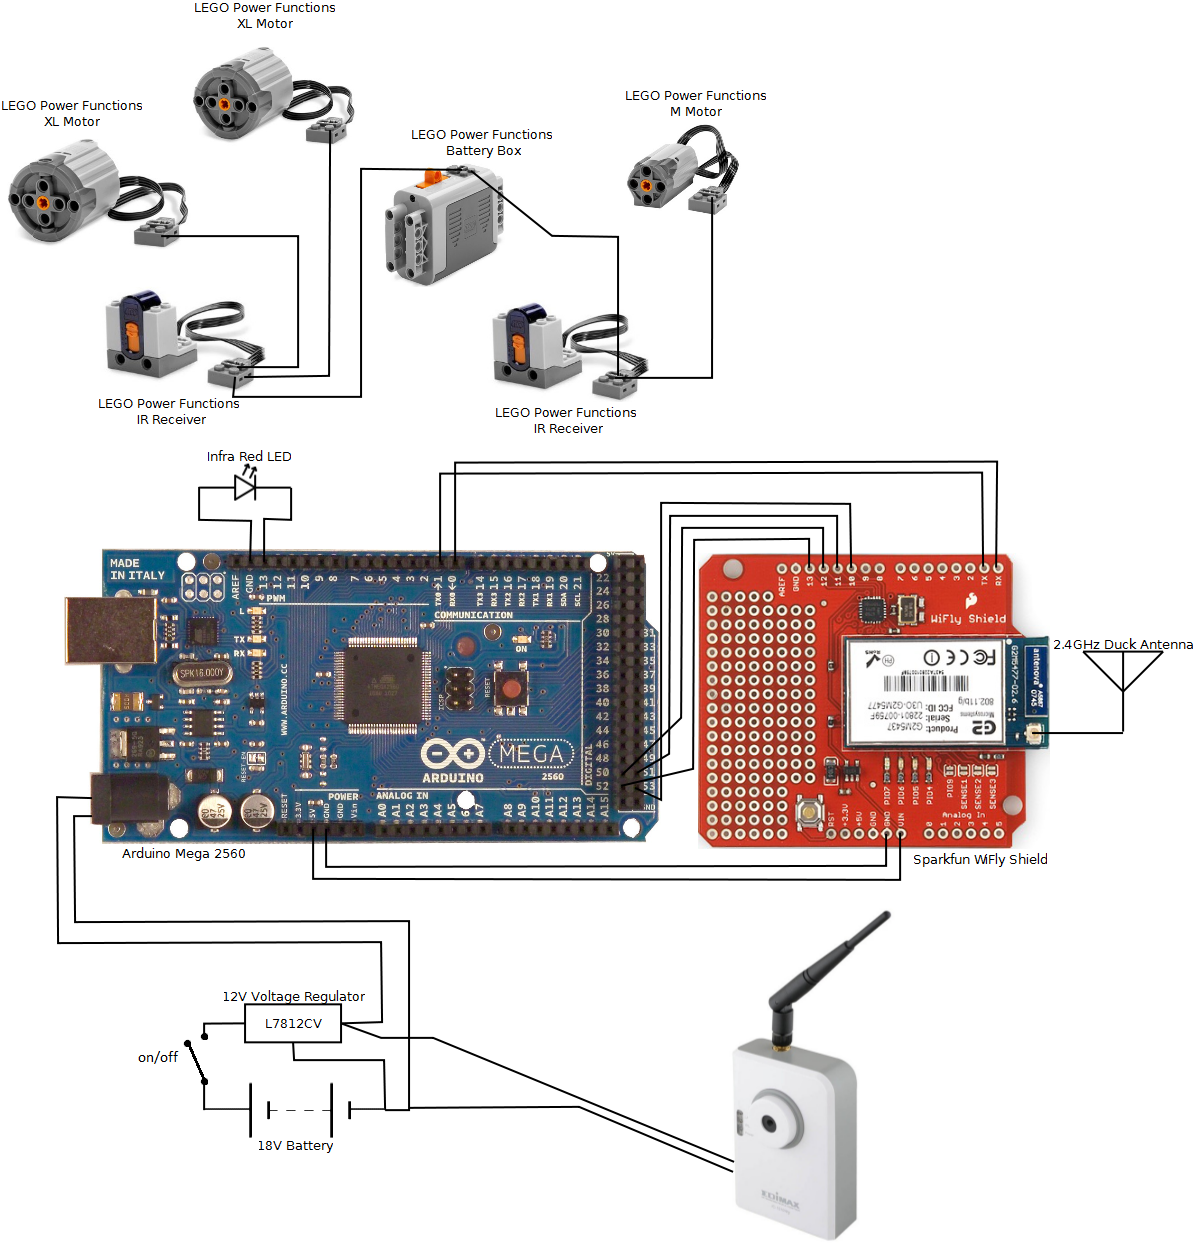 electrischschema wifi wiring diagram arduino wifi module wiring diagram \u2022 wiring cctv camera wiring diagram pdf at edmiracle.co